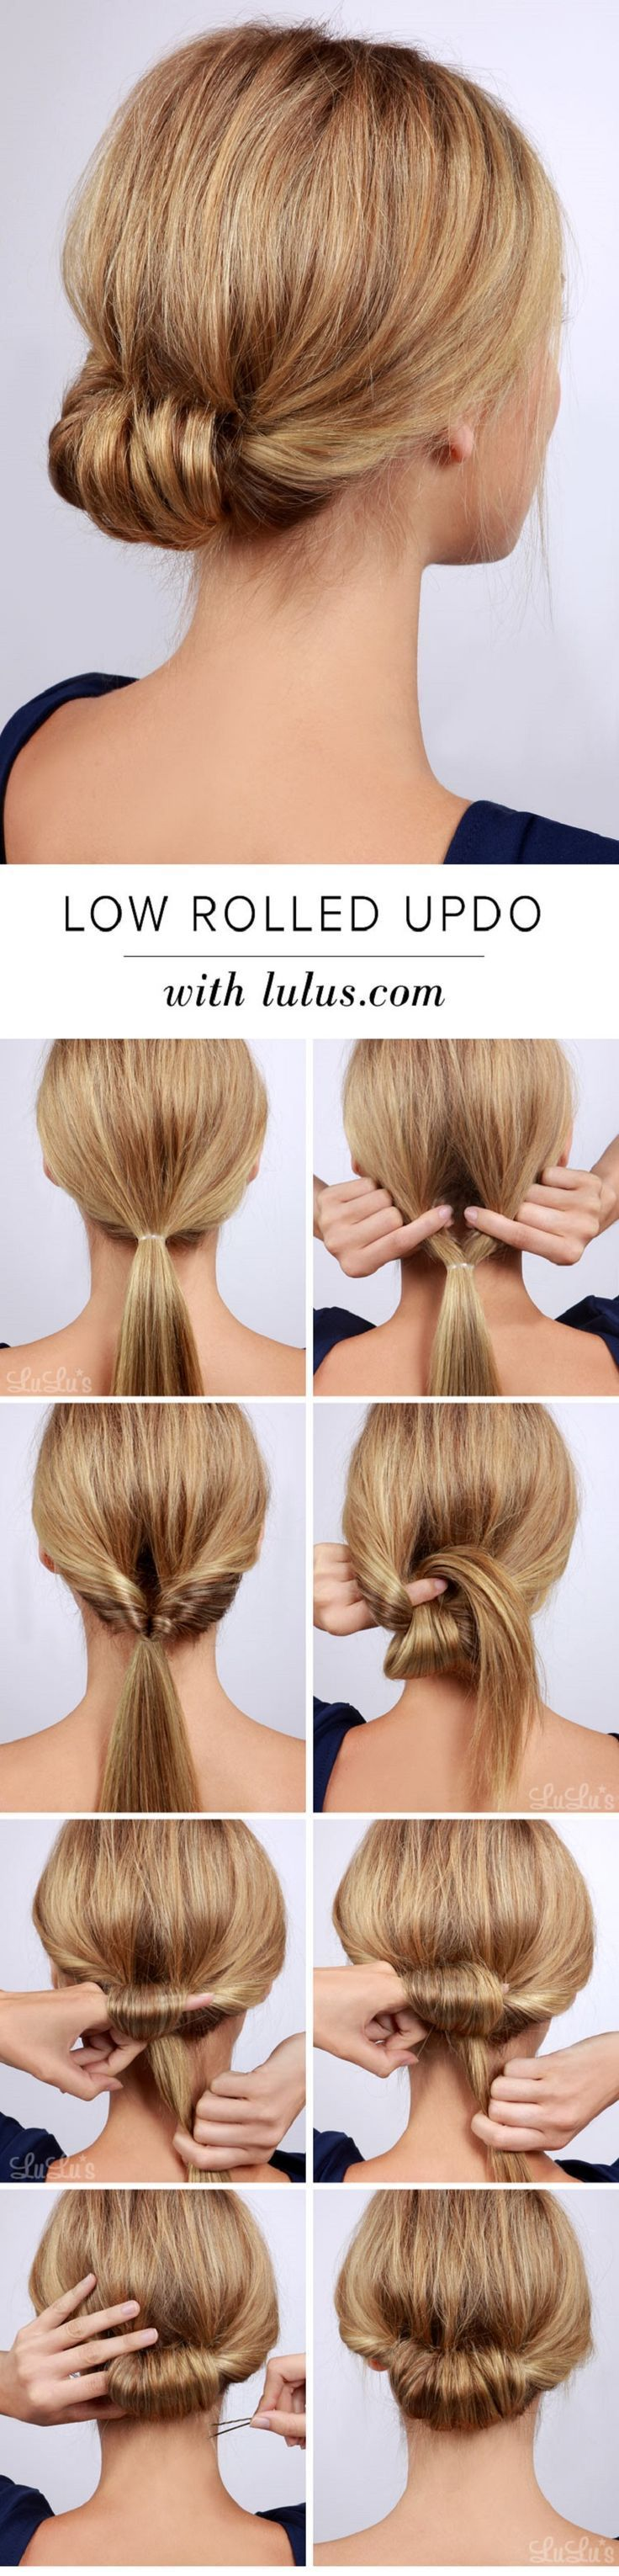 15 celebrity-inspired hairstyles to learn - hairstyles 2018 - #celebrity #hairstyles #inspired #learn - #new